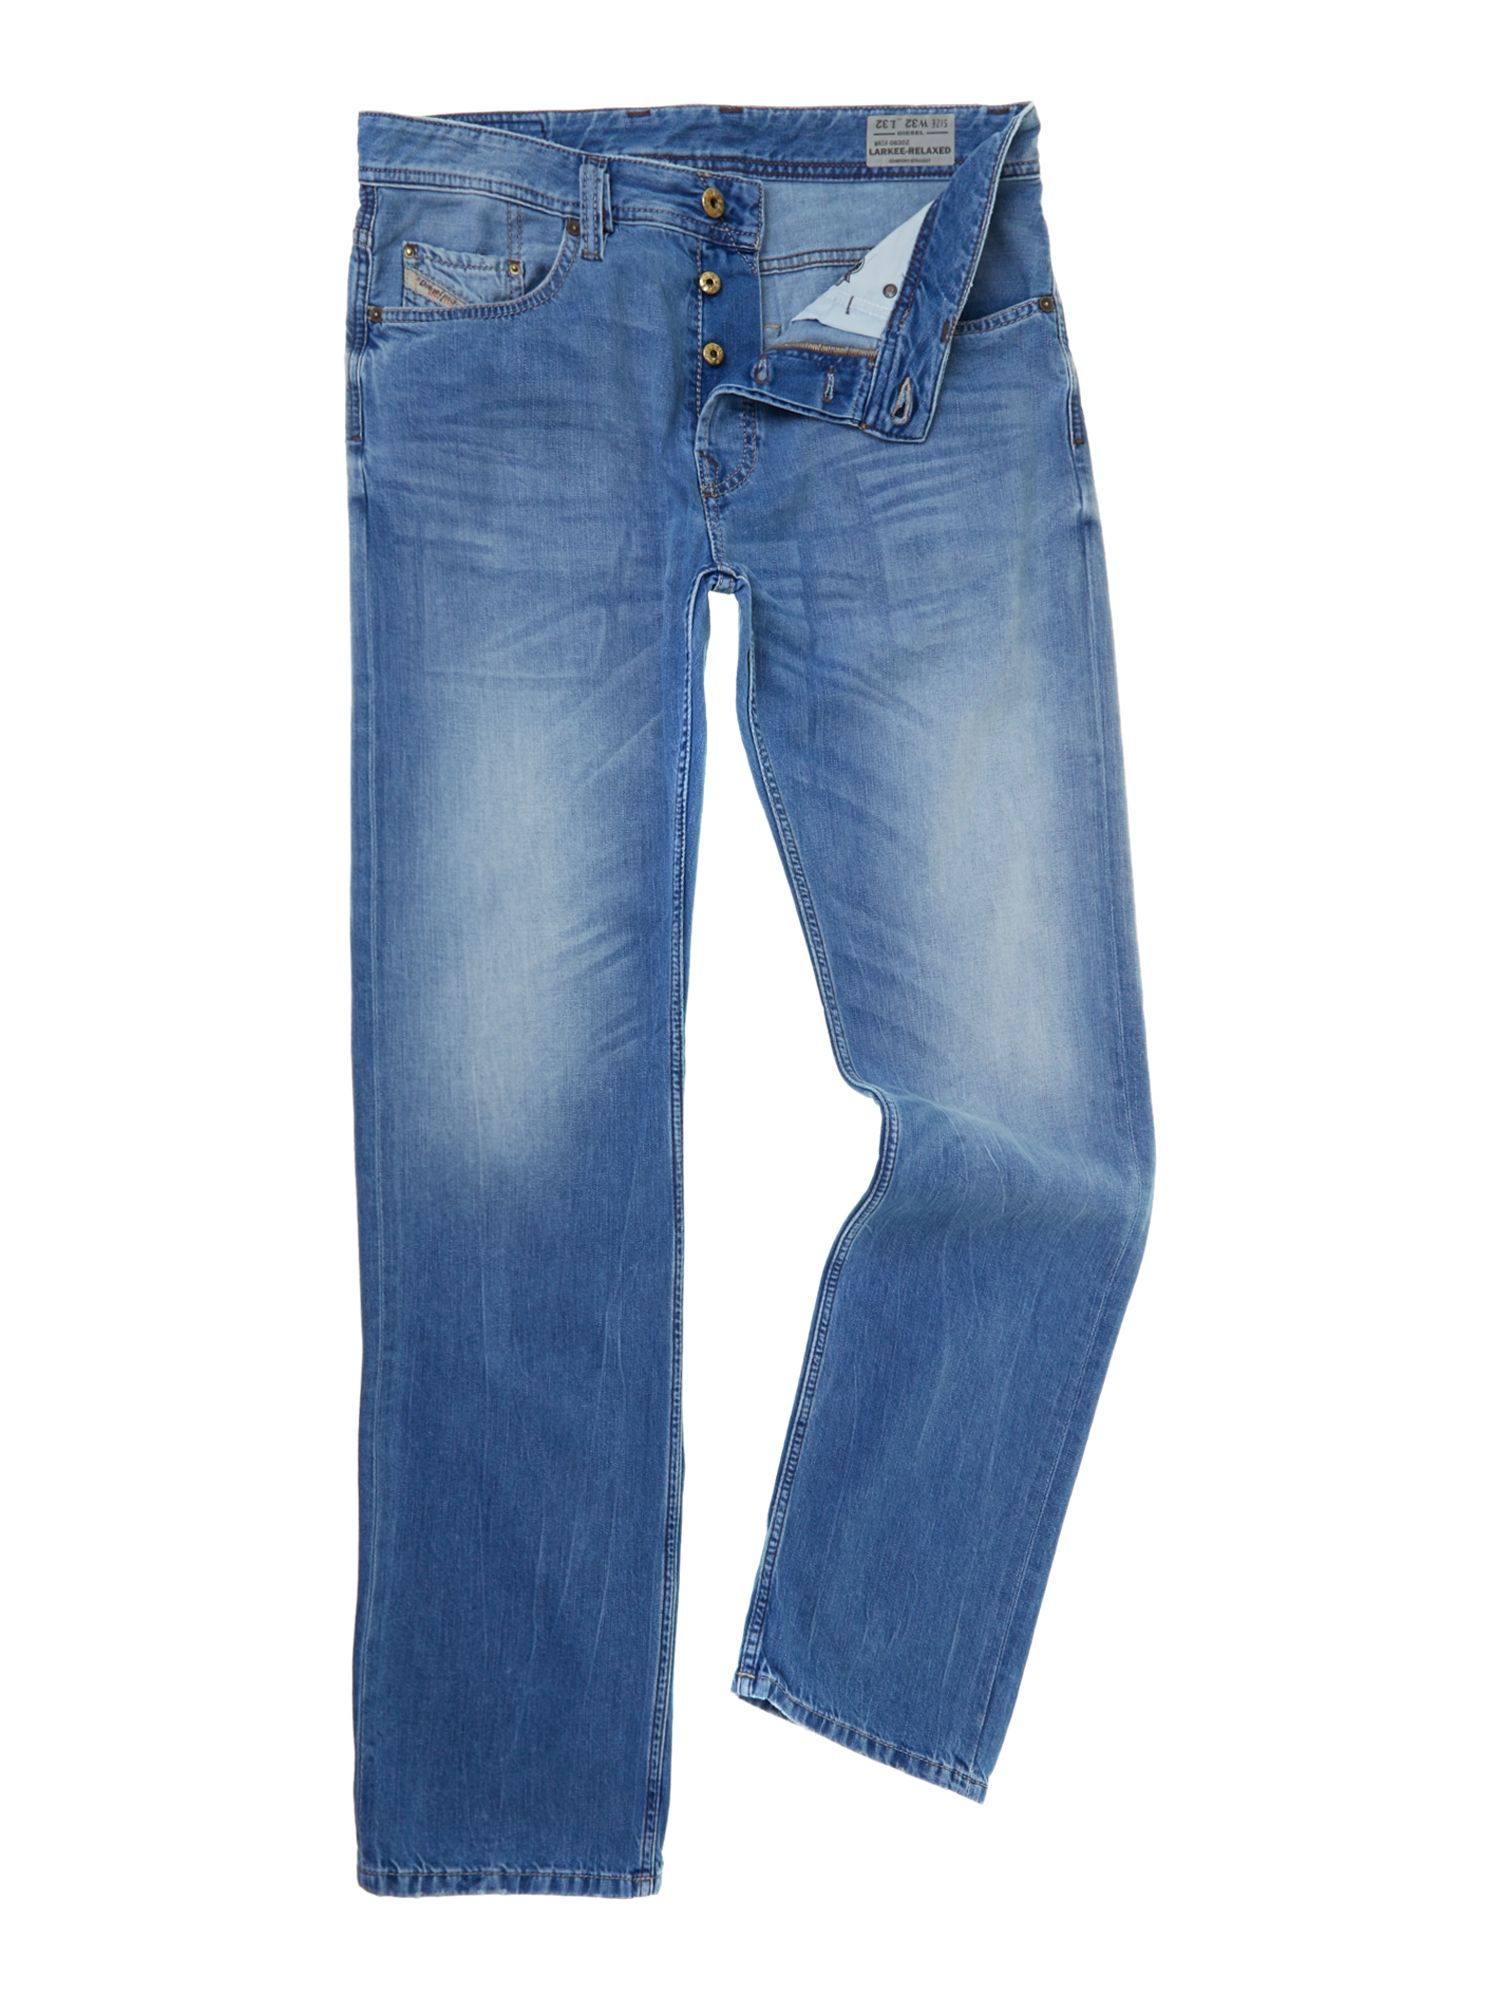 Larkee 830Z relaxed straight leg jeans